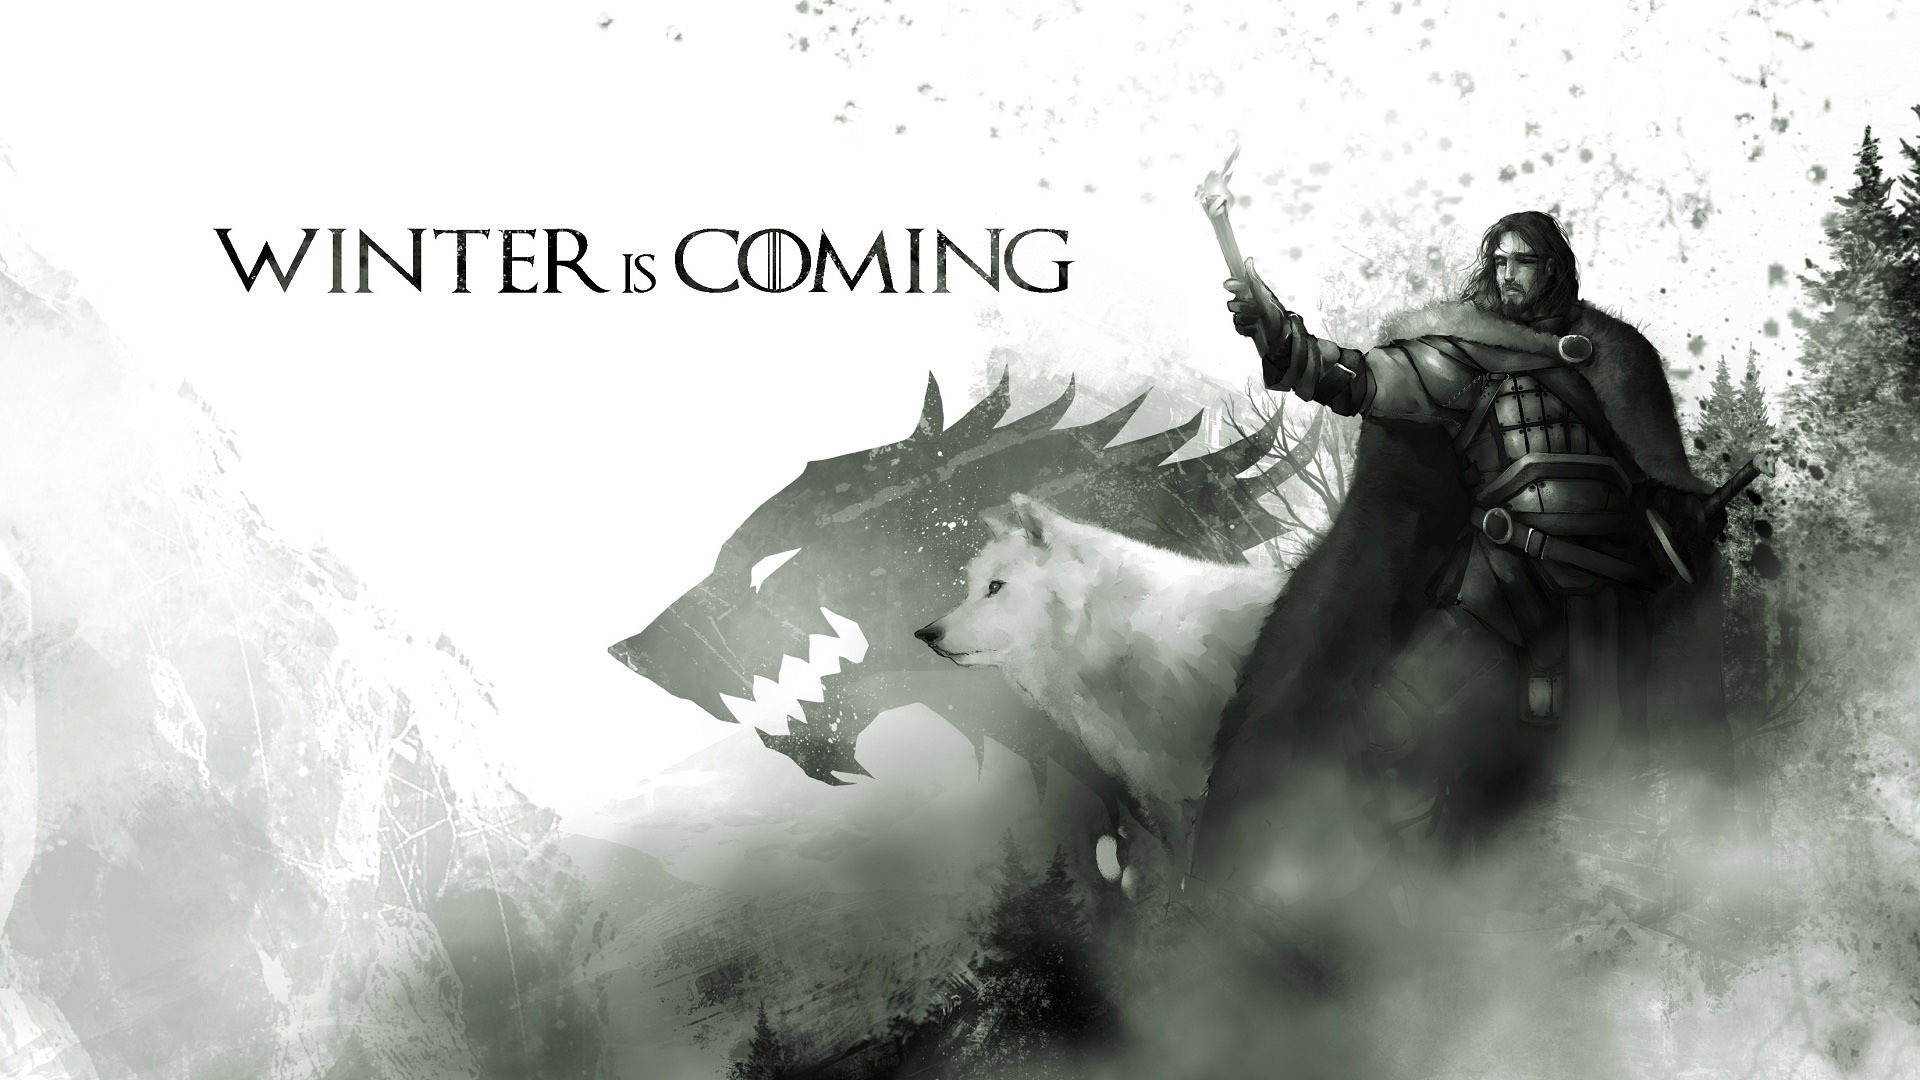 1920x1080 Game of Thrones HD Wallpaper